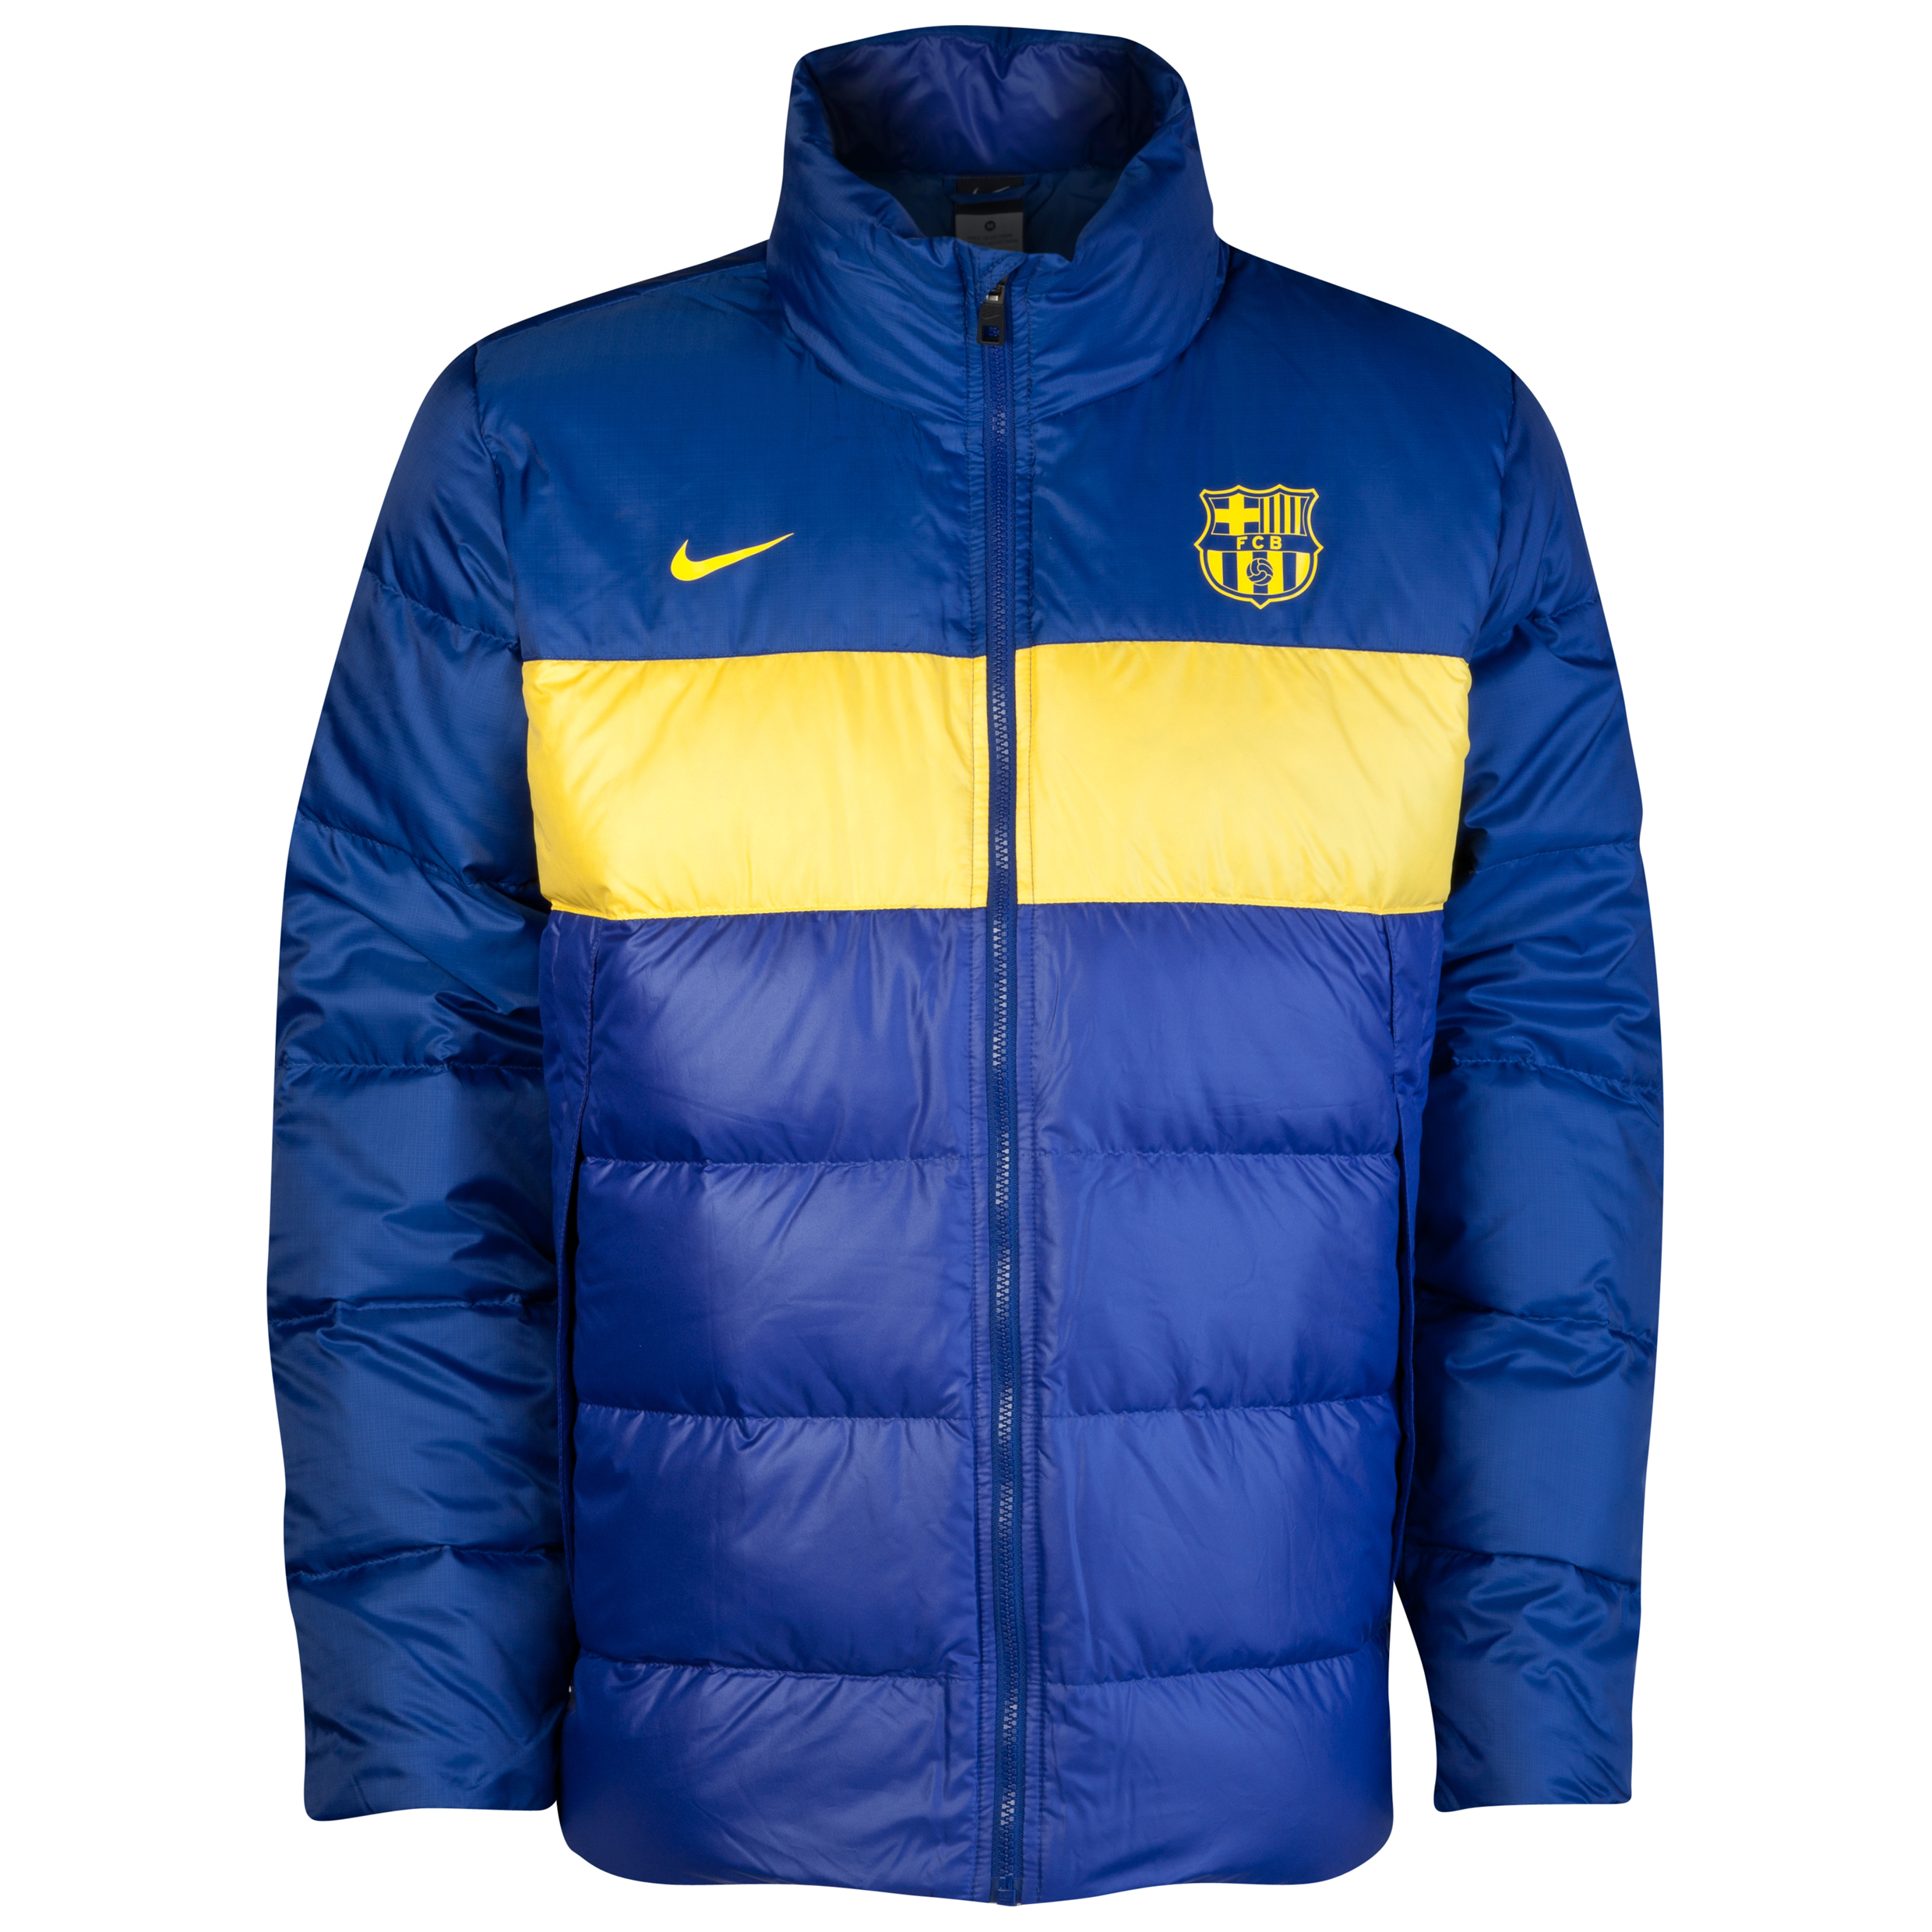 Barcelona Down Jacket - Deep Royal Blue/Tour Yellow